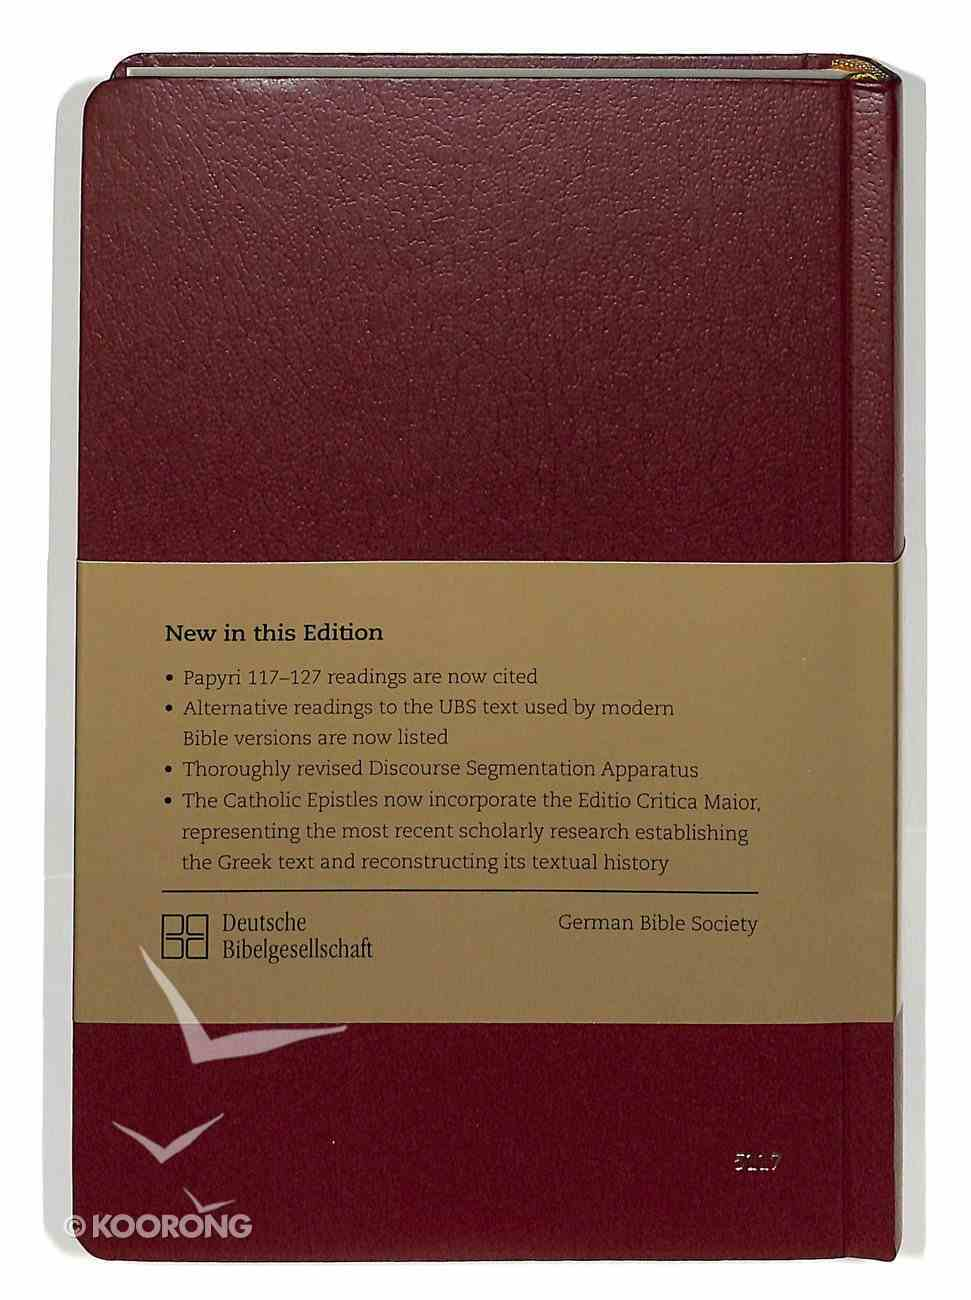 Greek New Testament Ubs5 Fifth Revised Edition With Concise Greek English Dictionary Hardback